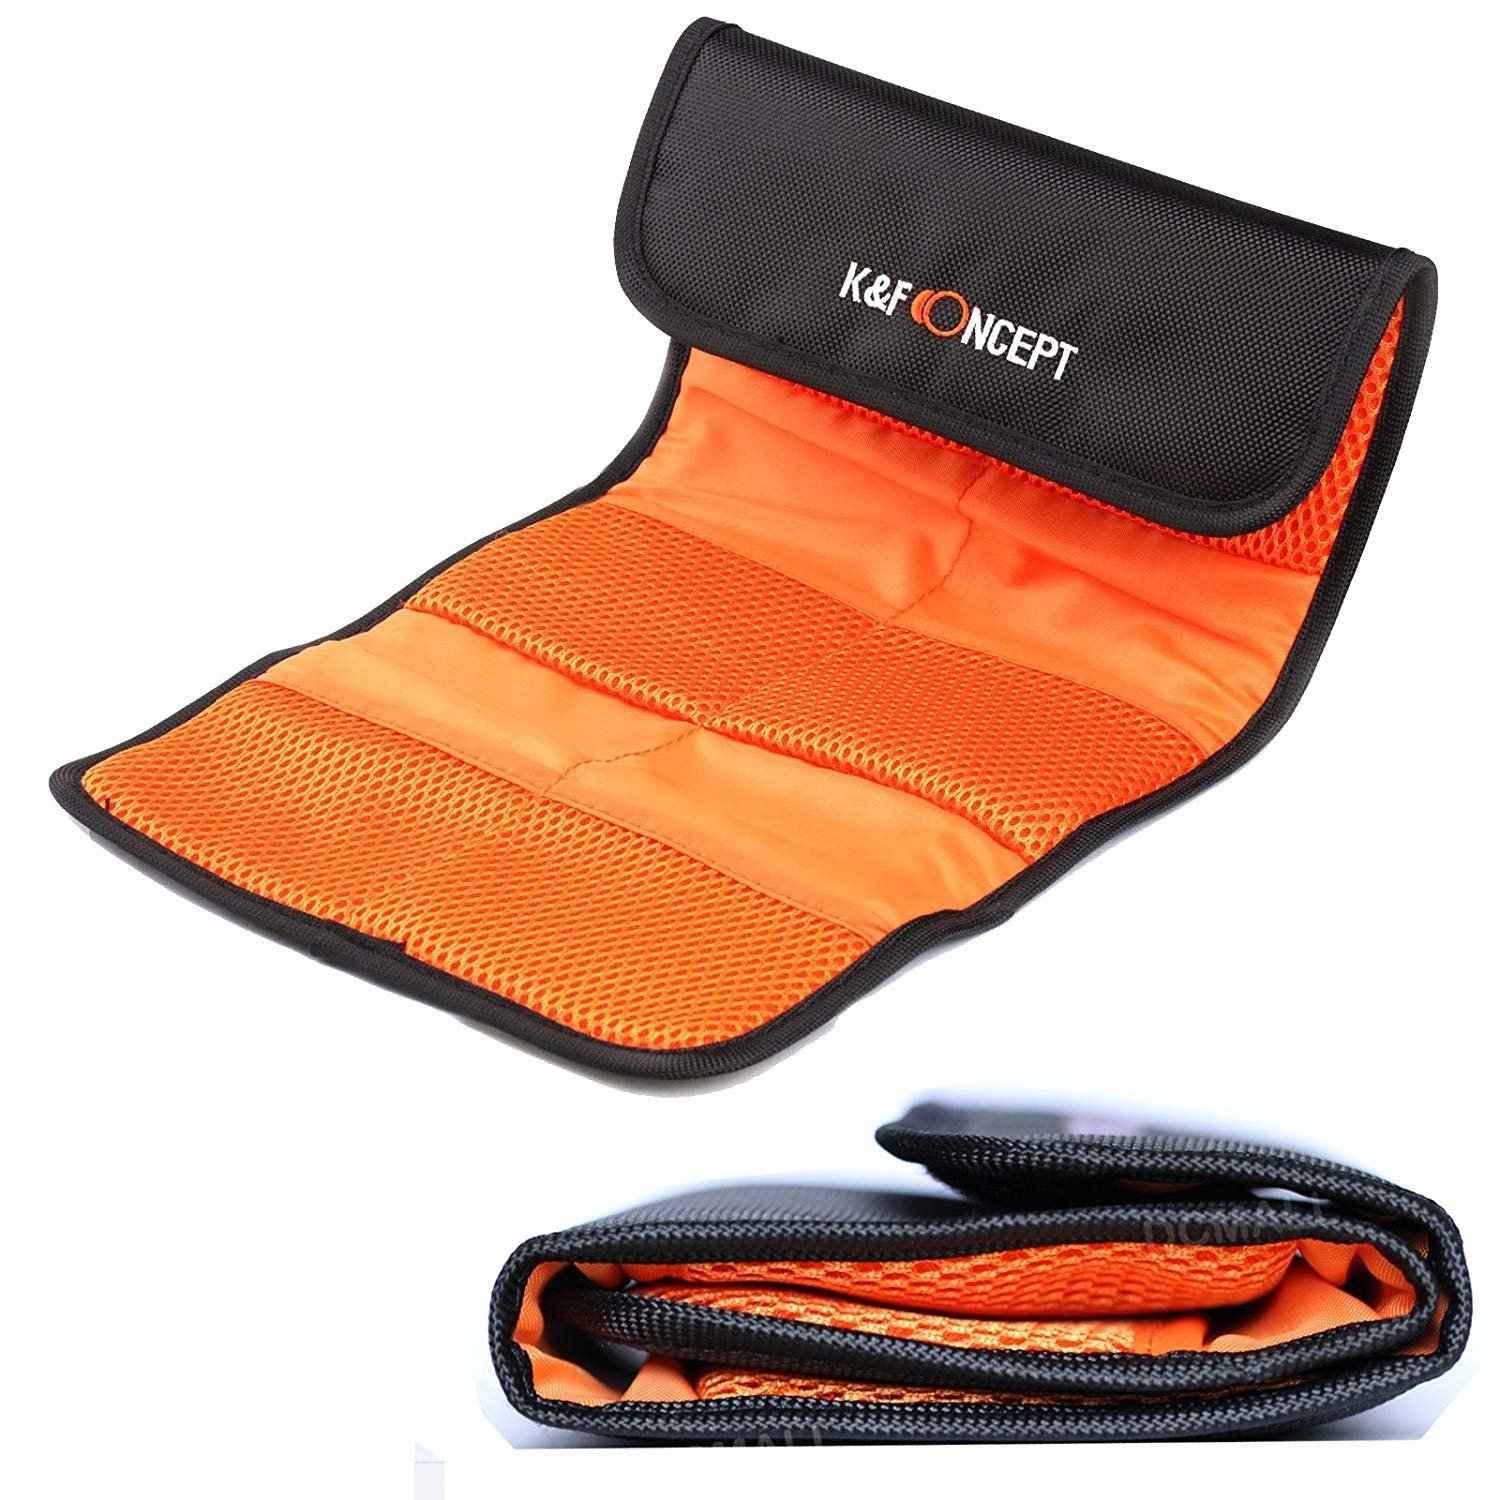 Filter Pouch,Camera Lens Filter Bag Pouch Wallet Case Filter Holder for all Digital Camera Circular or Square Filters,Holds round filters up to 77mm 6 Pocket